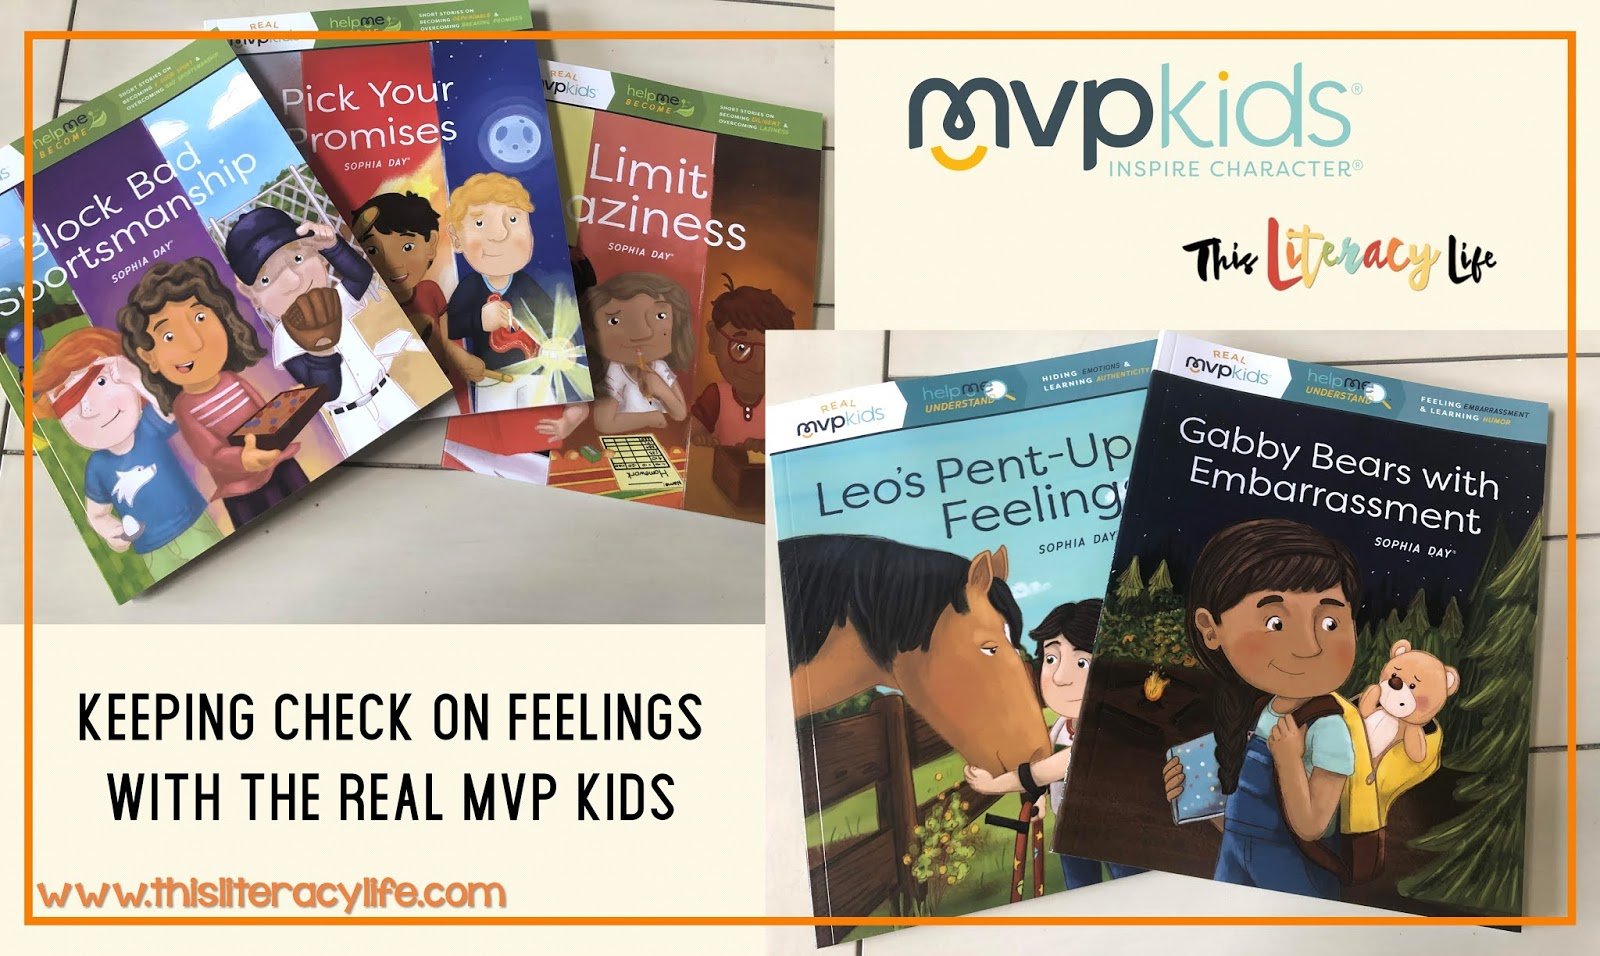 The Real MVP Kids series of books helps so many children learn important skills for getting along in the world. These books are perfect for parents and educators!